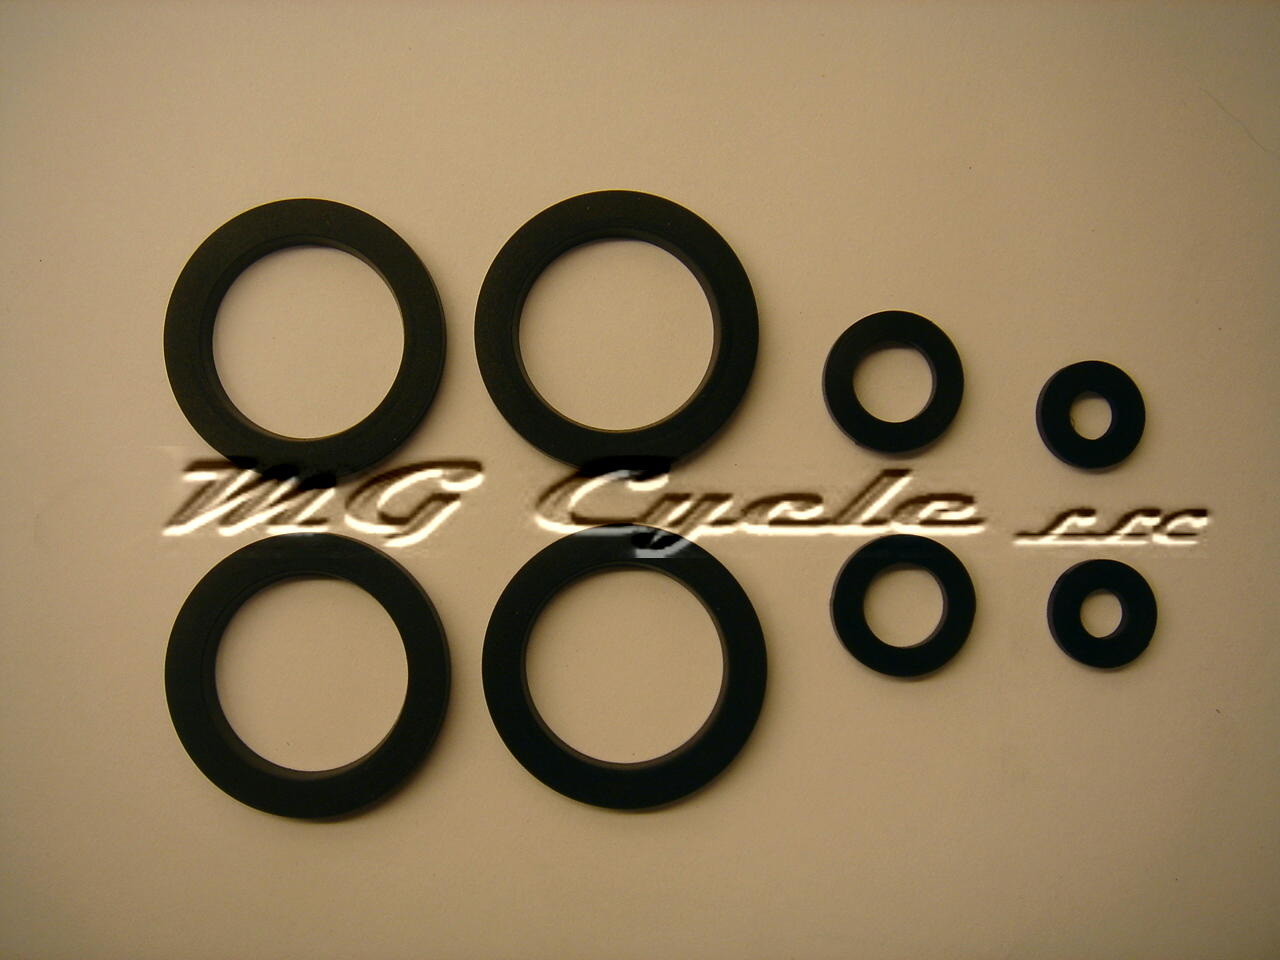 Fork gasket overhaul kit, Airone, Falcone